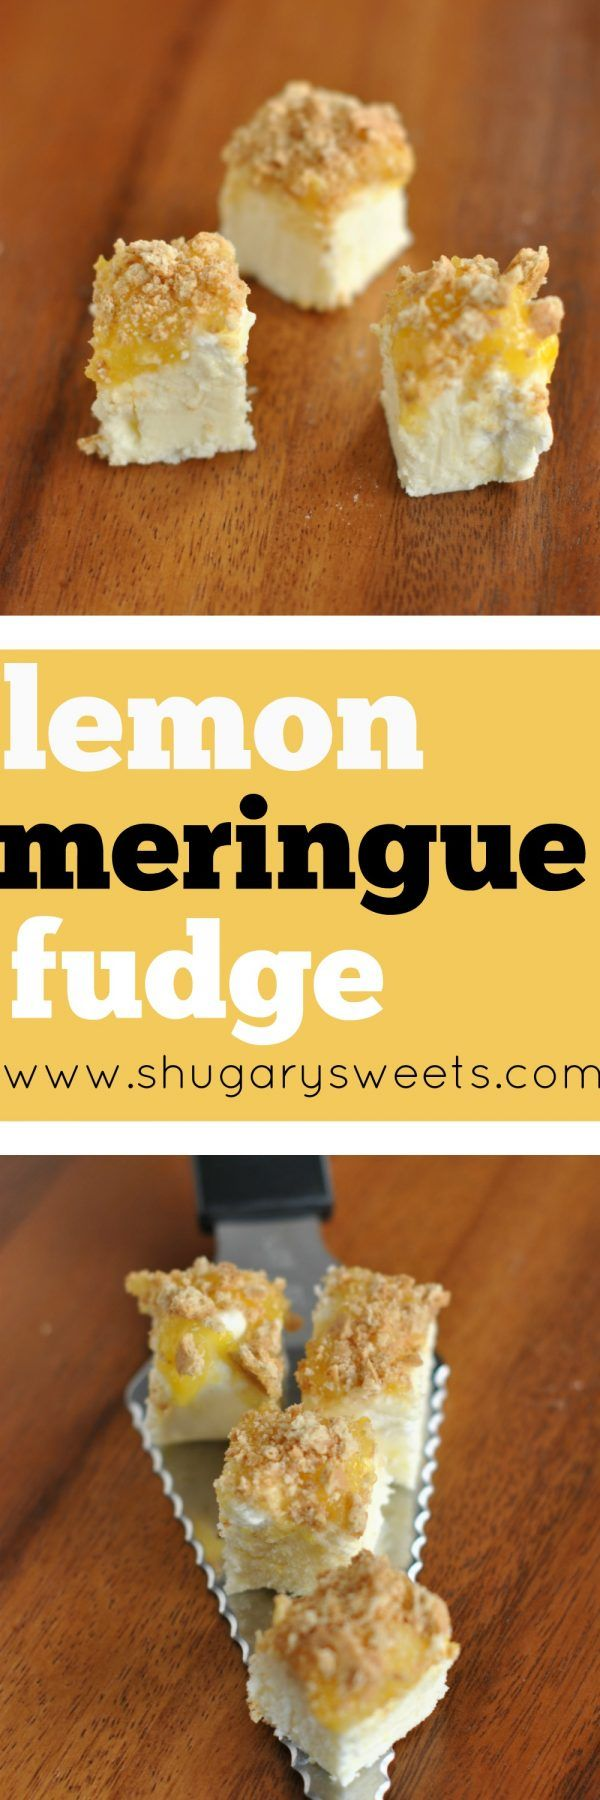 Lemon Meringue Fudge - Shugary Sweets